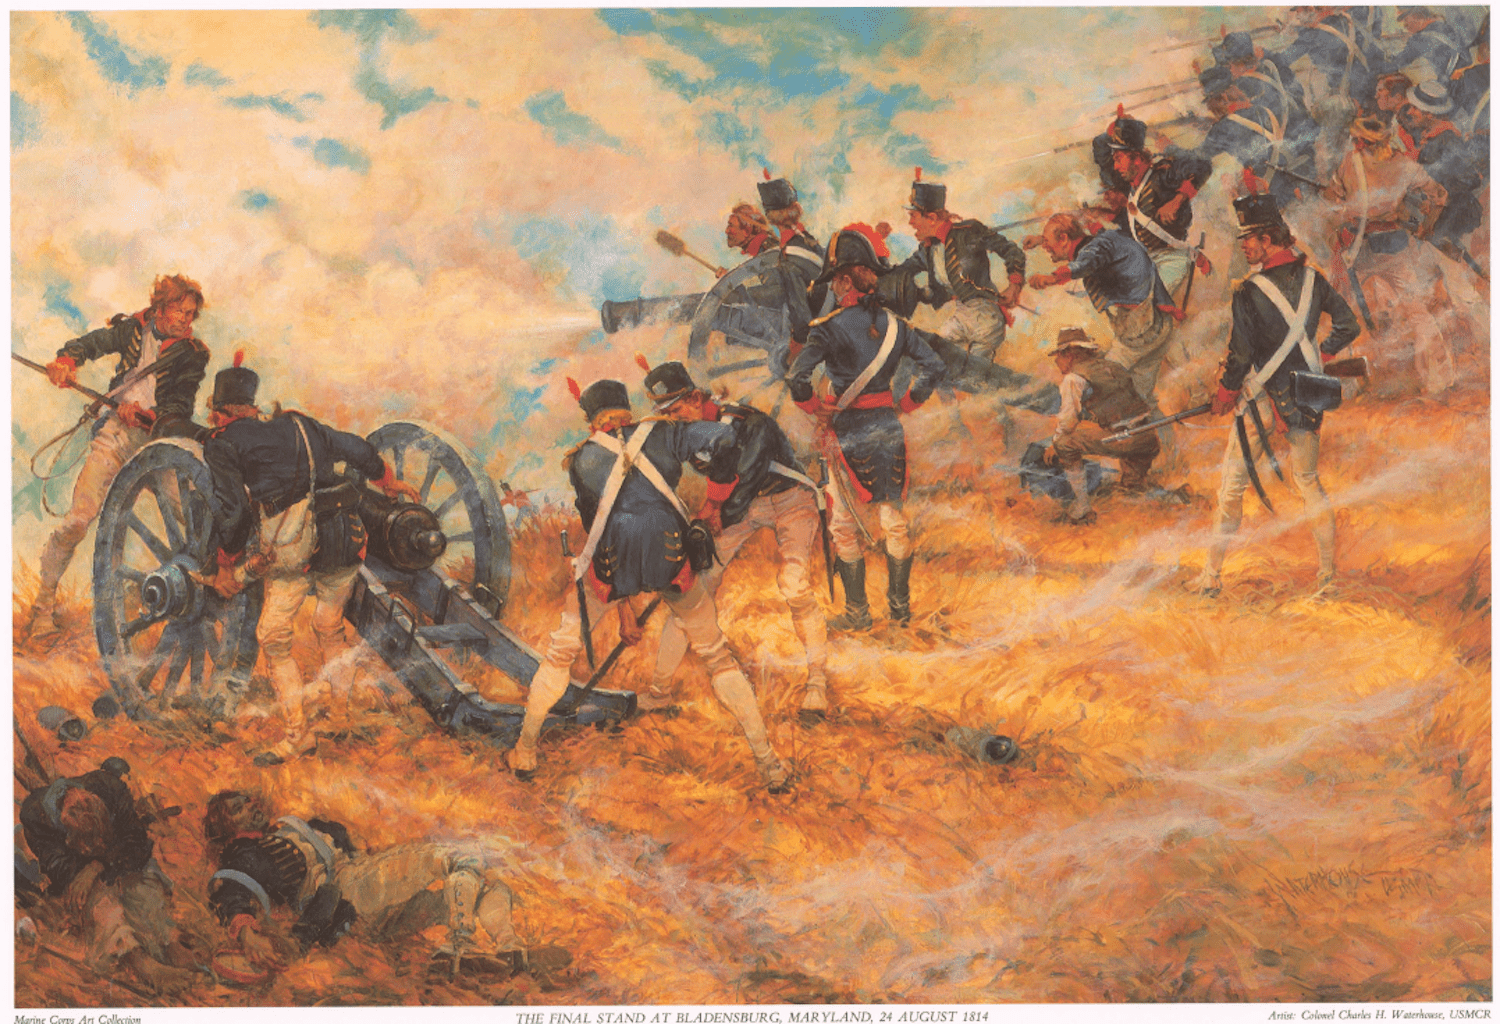 Colonel Charles Waterhouse's painting of the depiction of U.S. Marines manning their guns at Bladensburg, on the boundary of Washington-Maryland